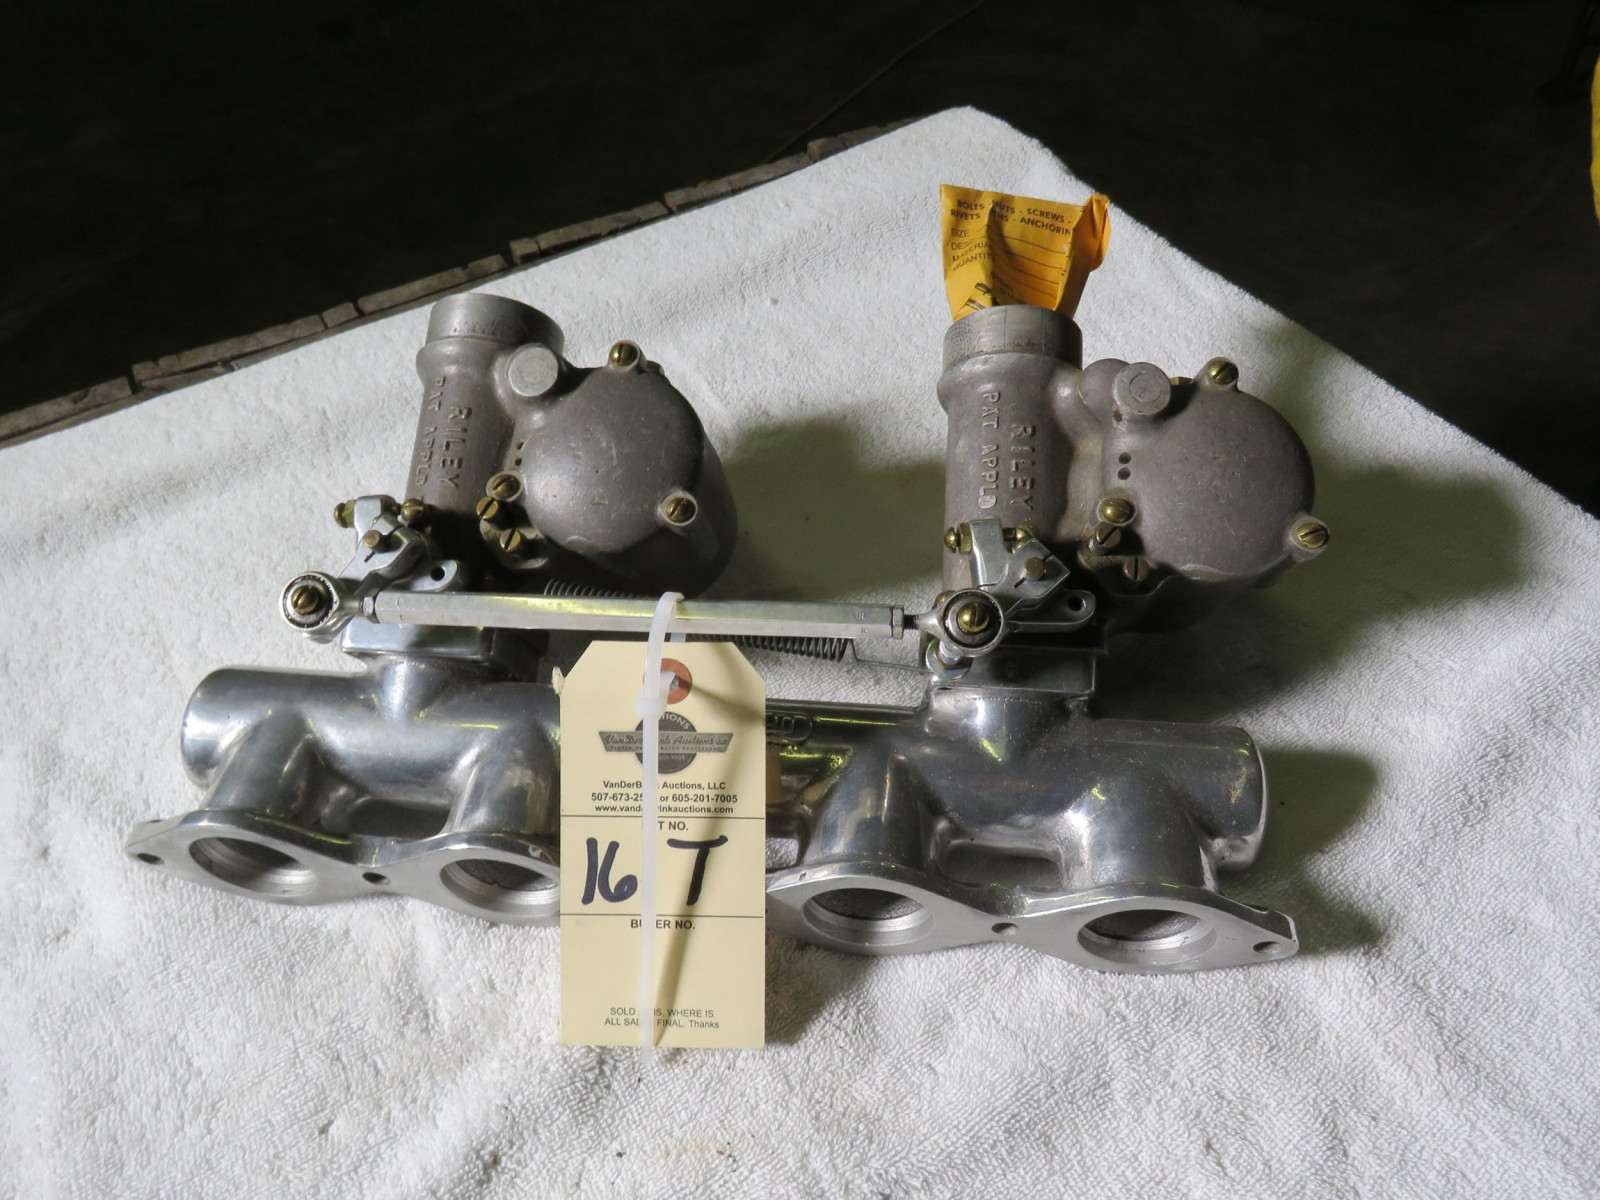 Rare Riley Intake with Riley Dual Carbs for Speed Equipment - Image 1